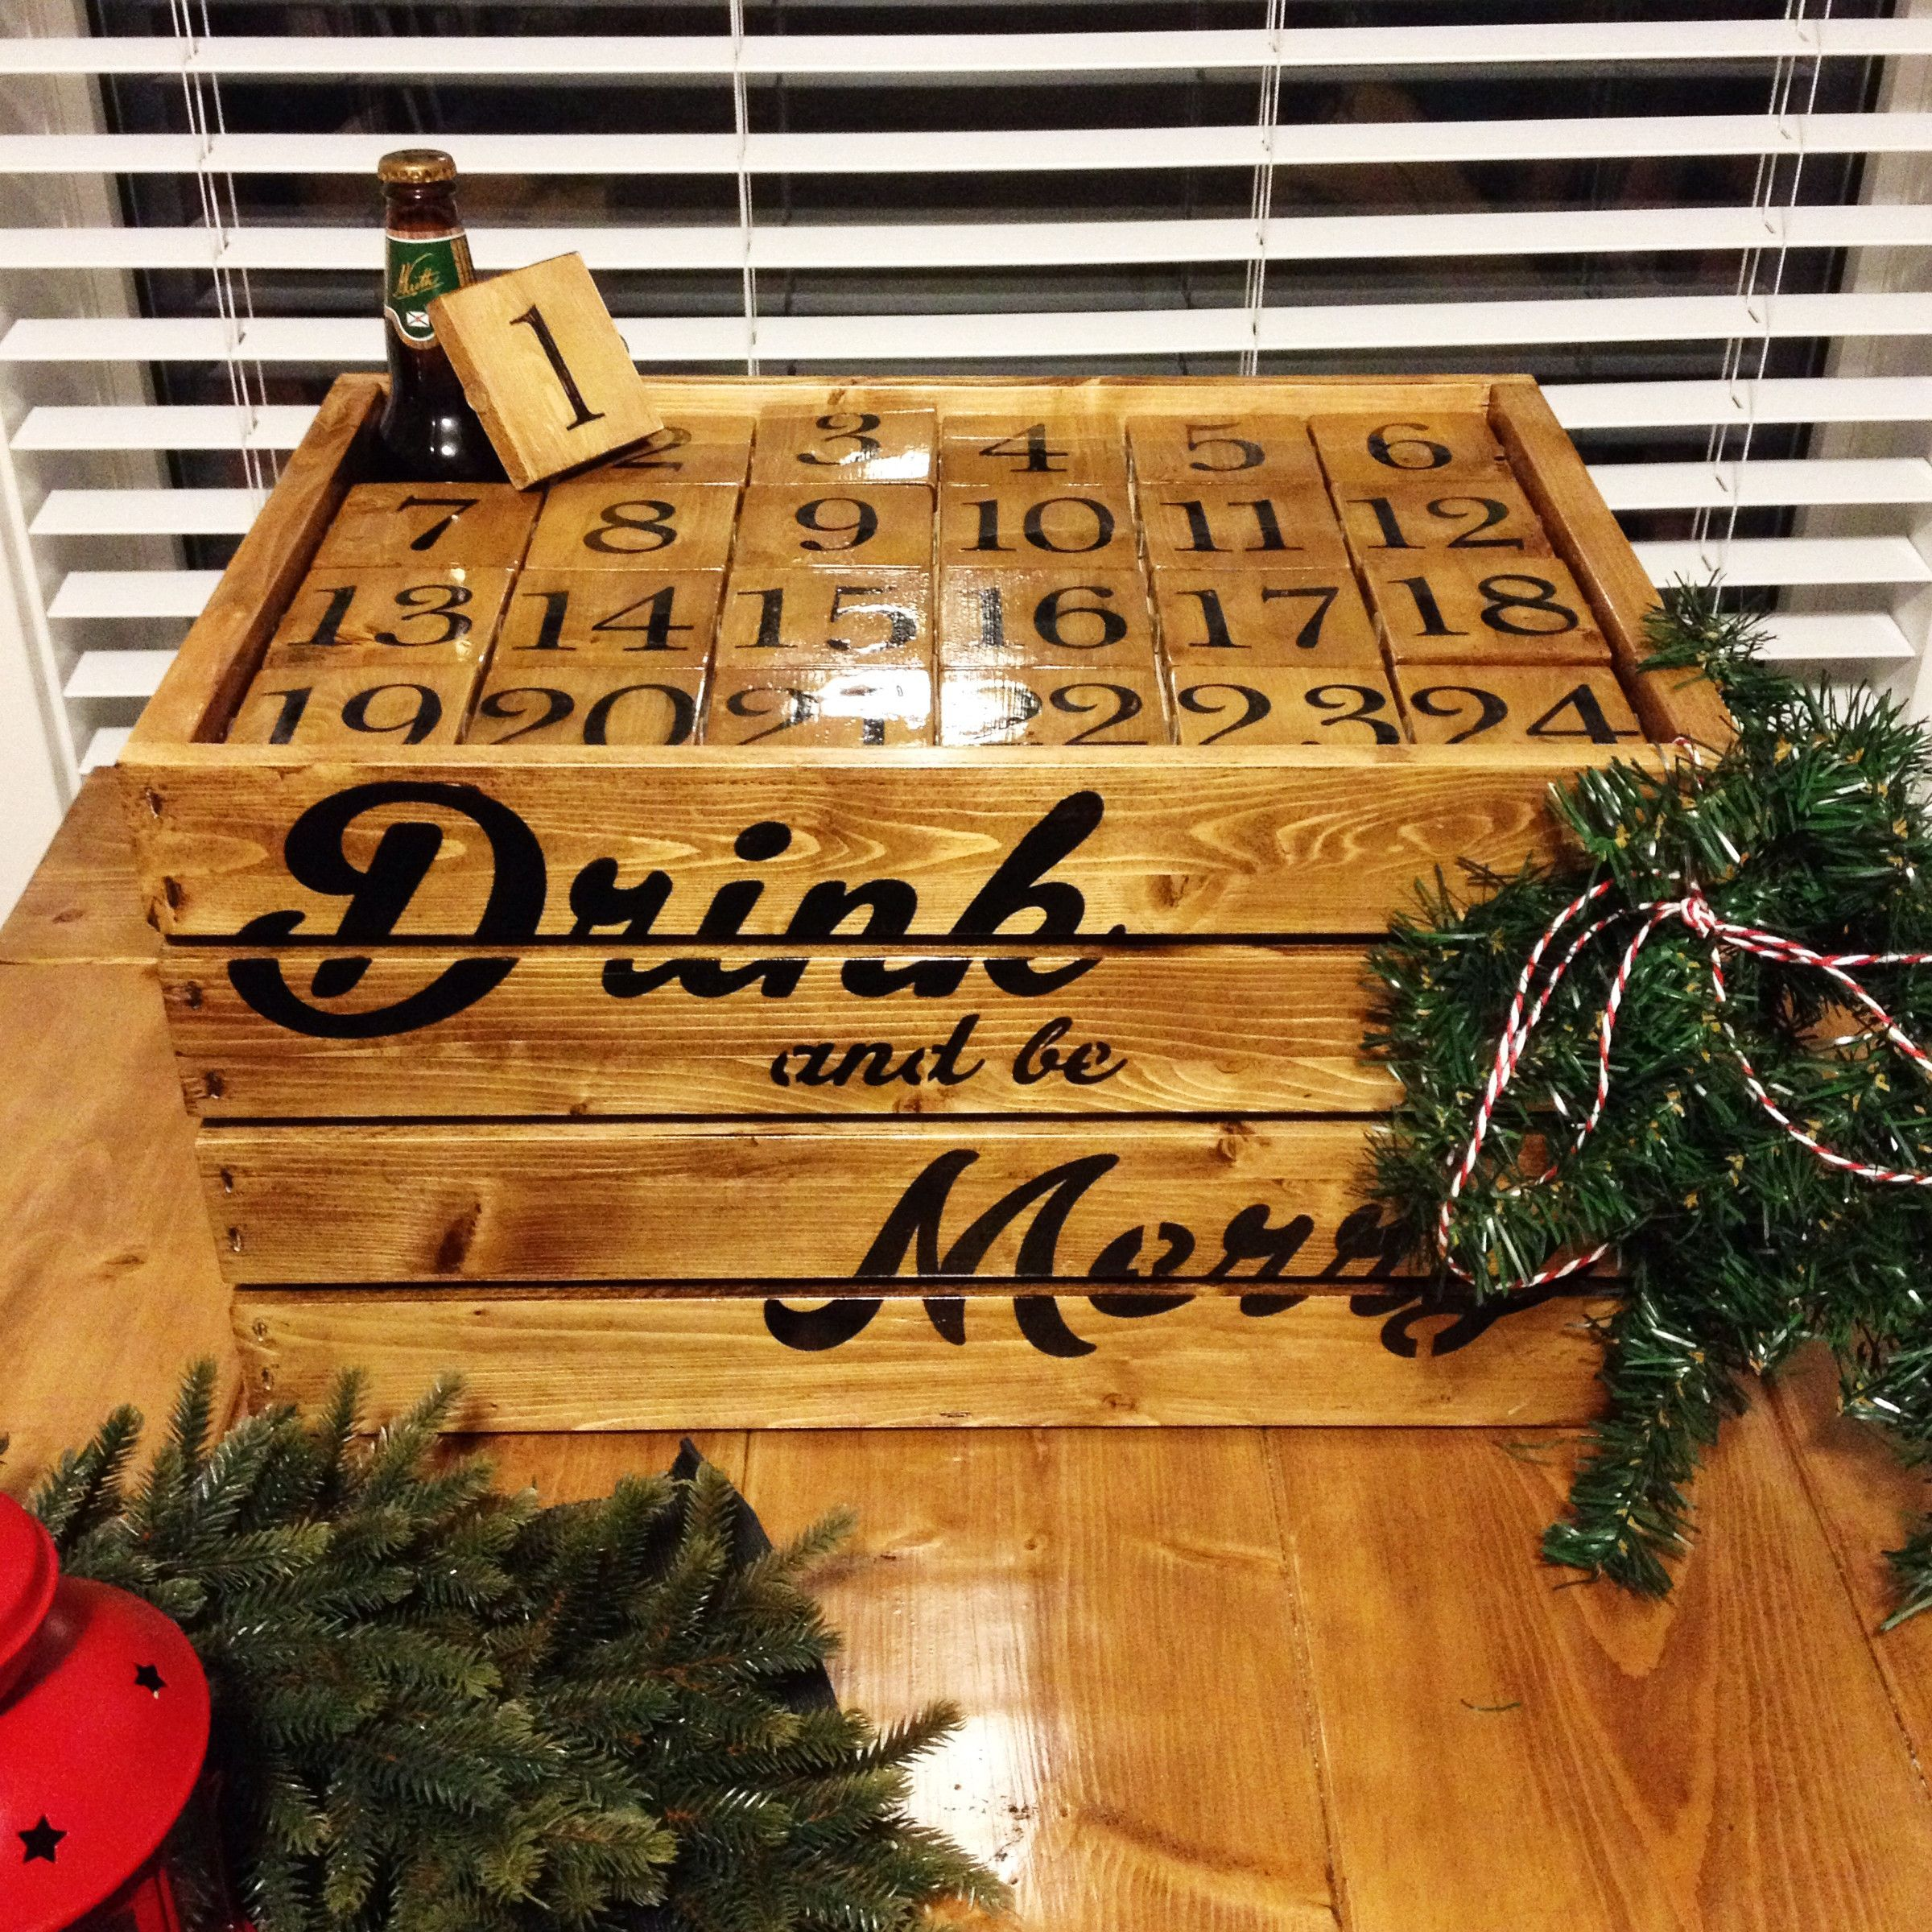 Advent Calendar Ideas Wife : My wife made me a beer advent calendar for christmas this